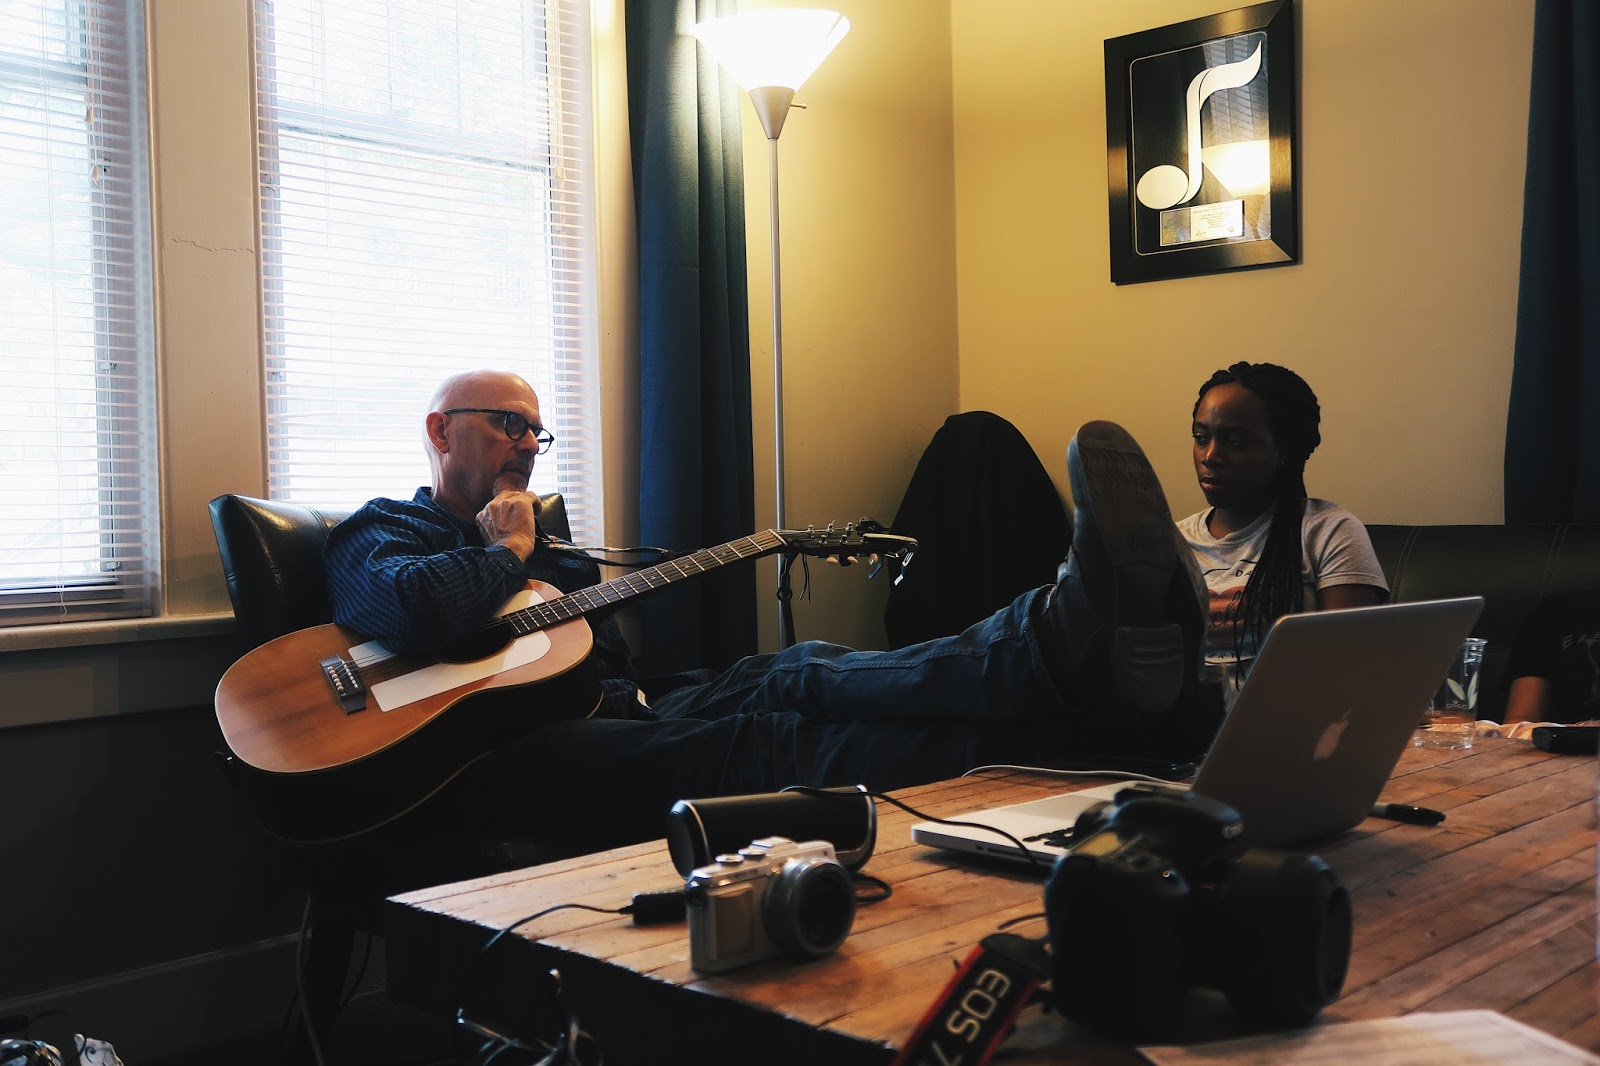 Billy Montana writing session at Curb